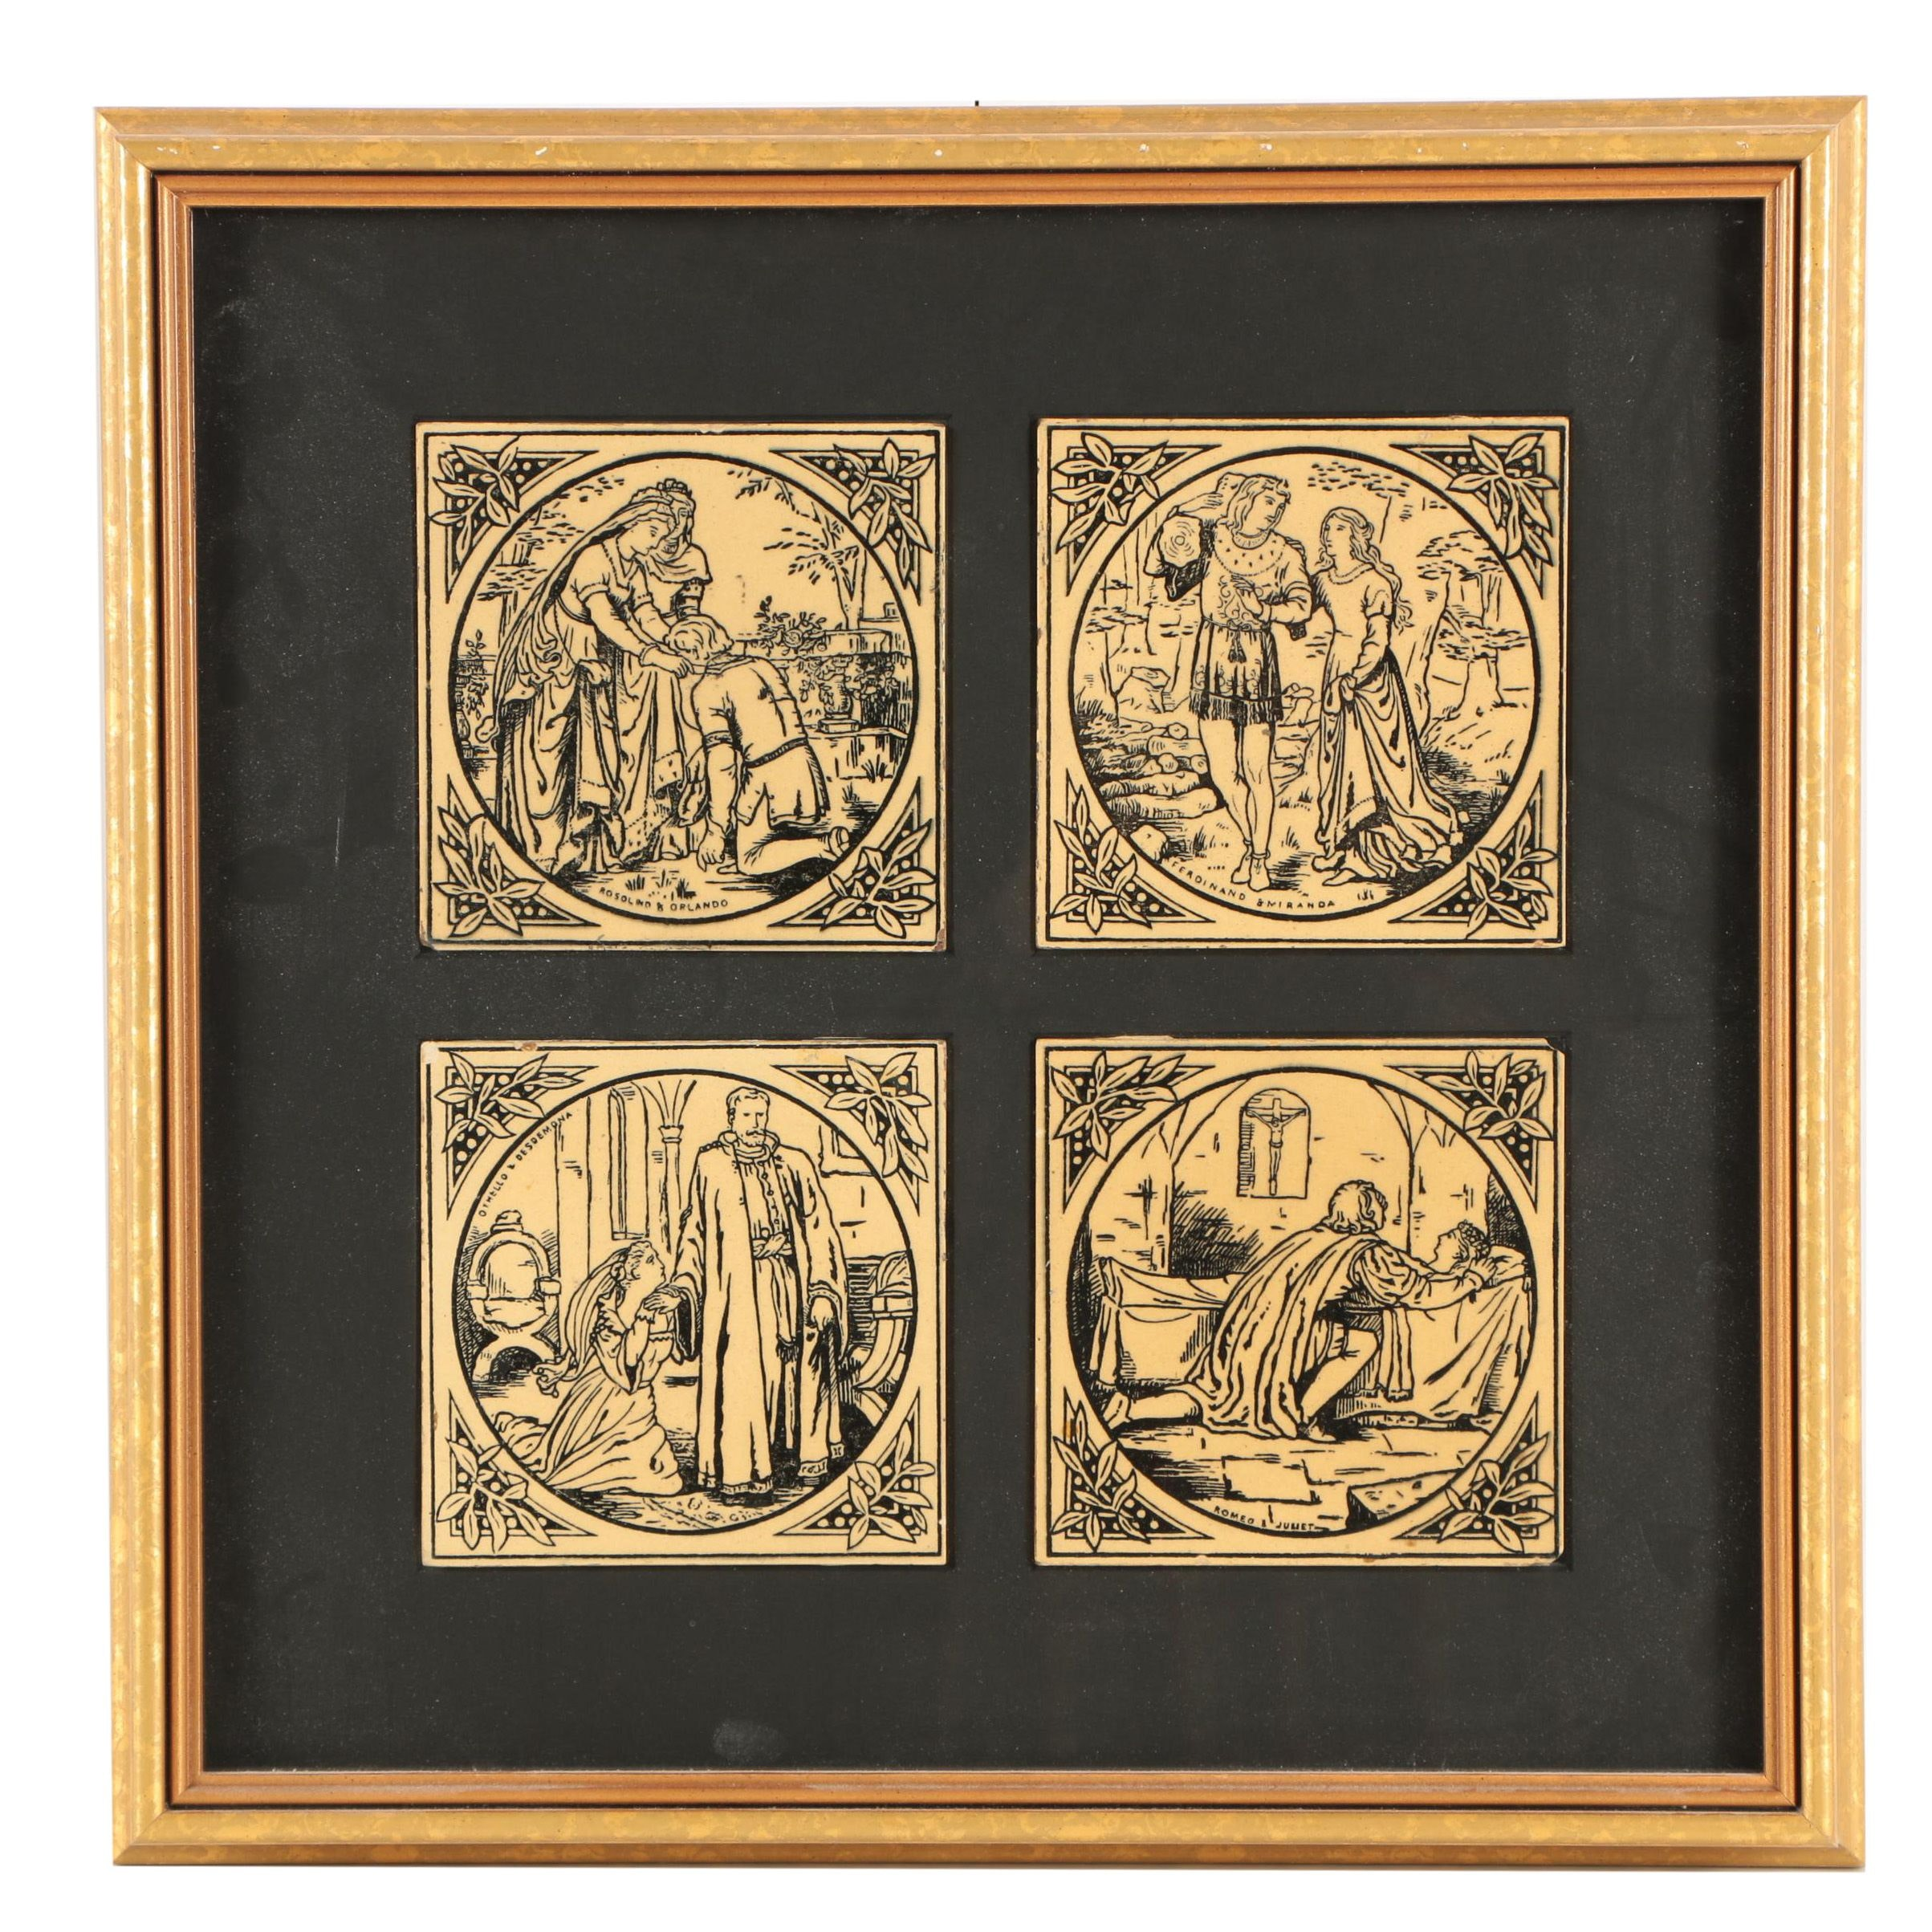 Vintage Prints on Tiles of Couples from Shakesperean Plays